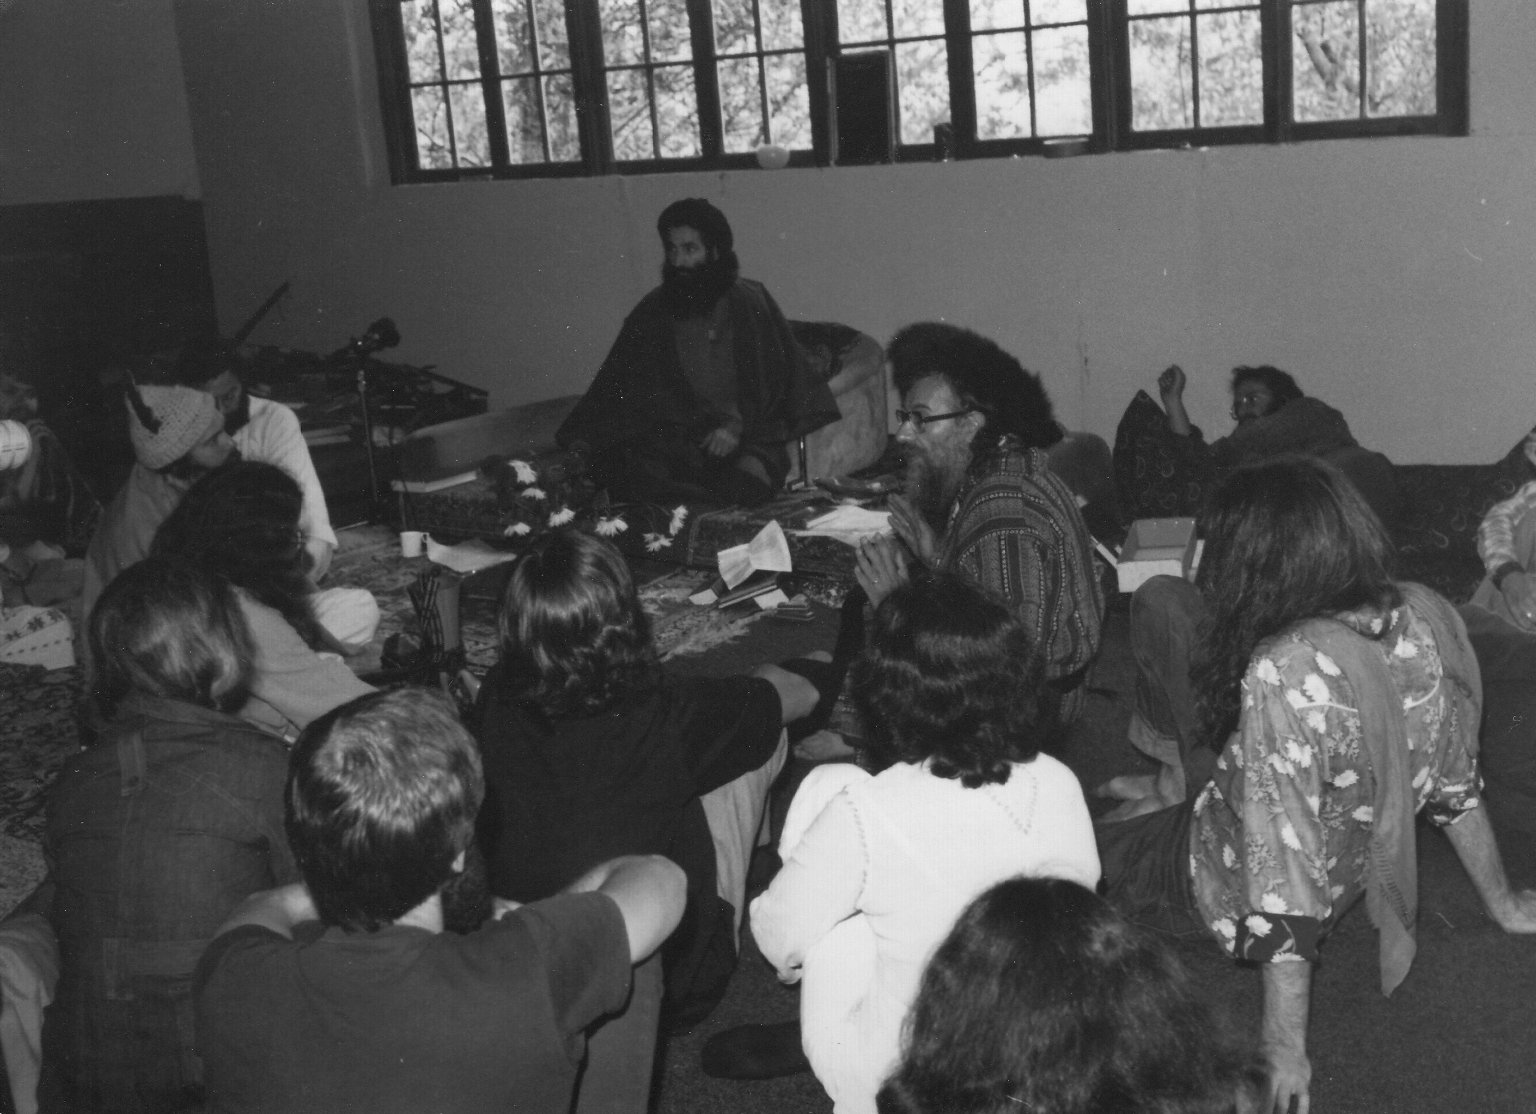 Rabbi Zalman Schachter teaching with a Sufi sheikh, ca. 1970s.